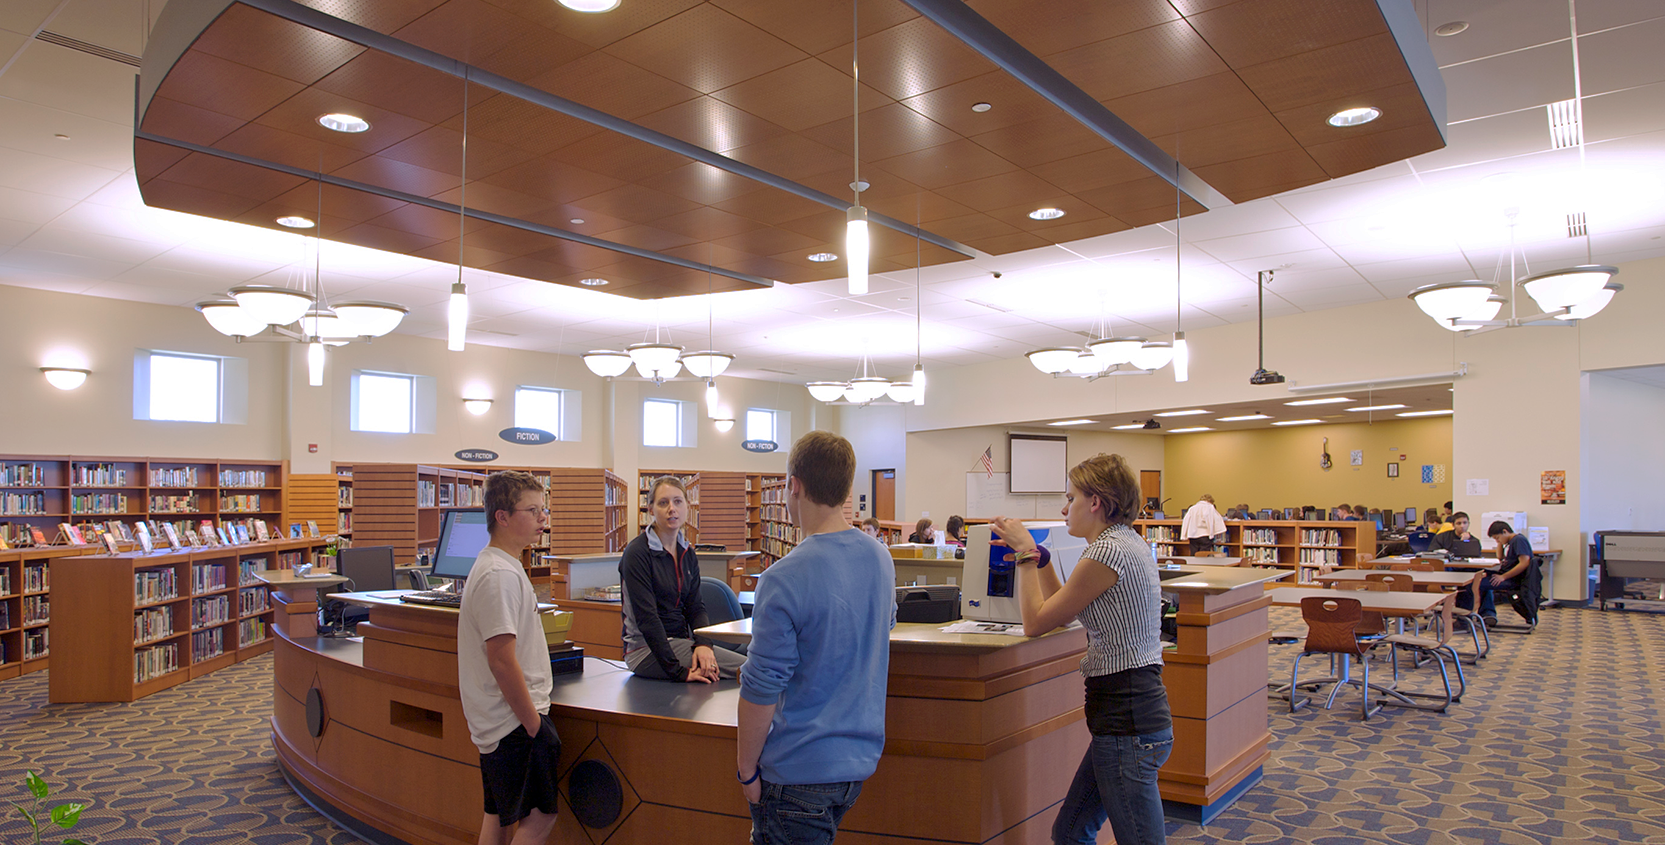 Portage-Central-HS-Library-Information-1665x845